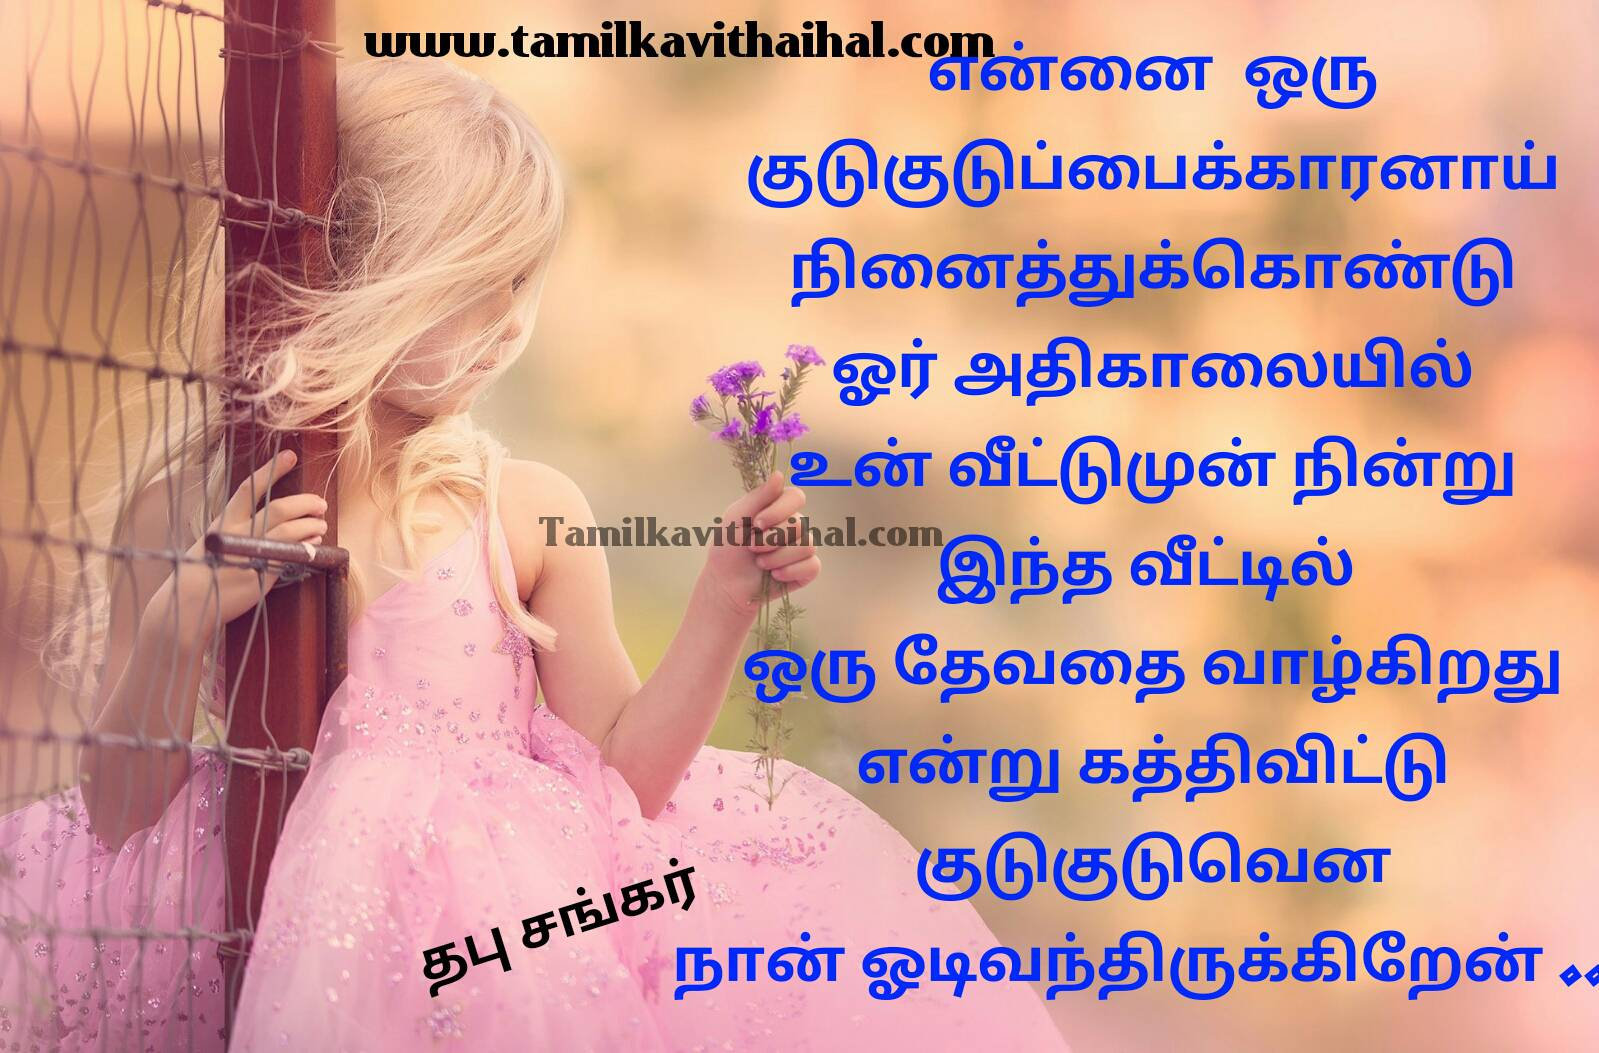 கதம்பம் - {பல்சுவை - தொடர்பதிவு} Awesome-thabu-sankar-tamil-kavithai-boy-feel-love-poem-thavathai-angel-images-download